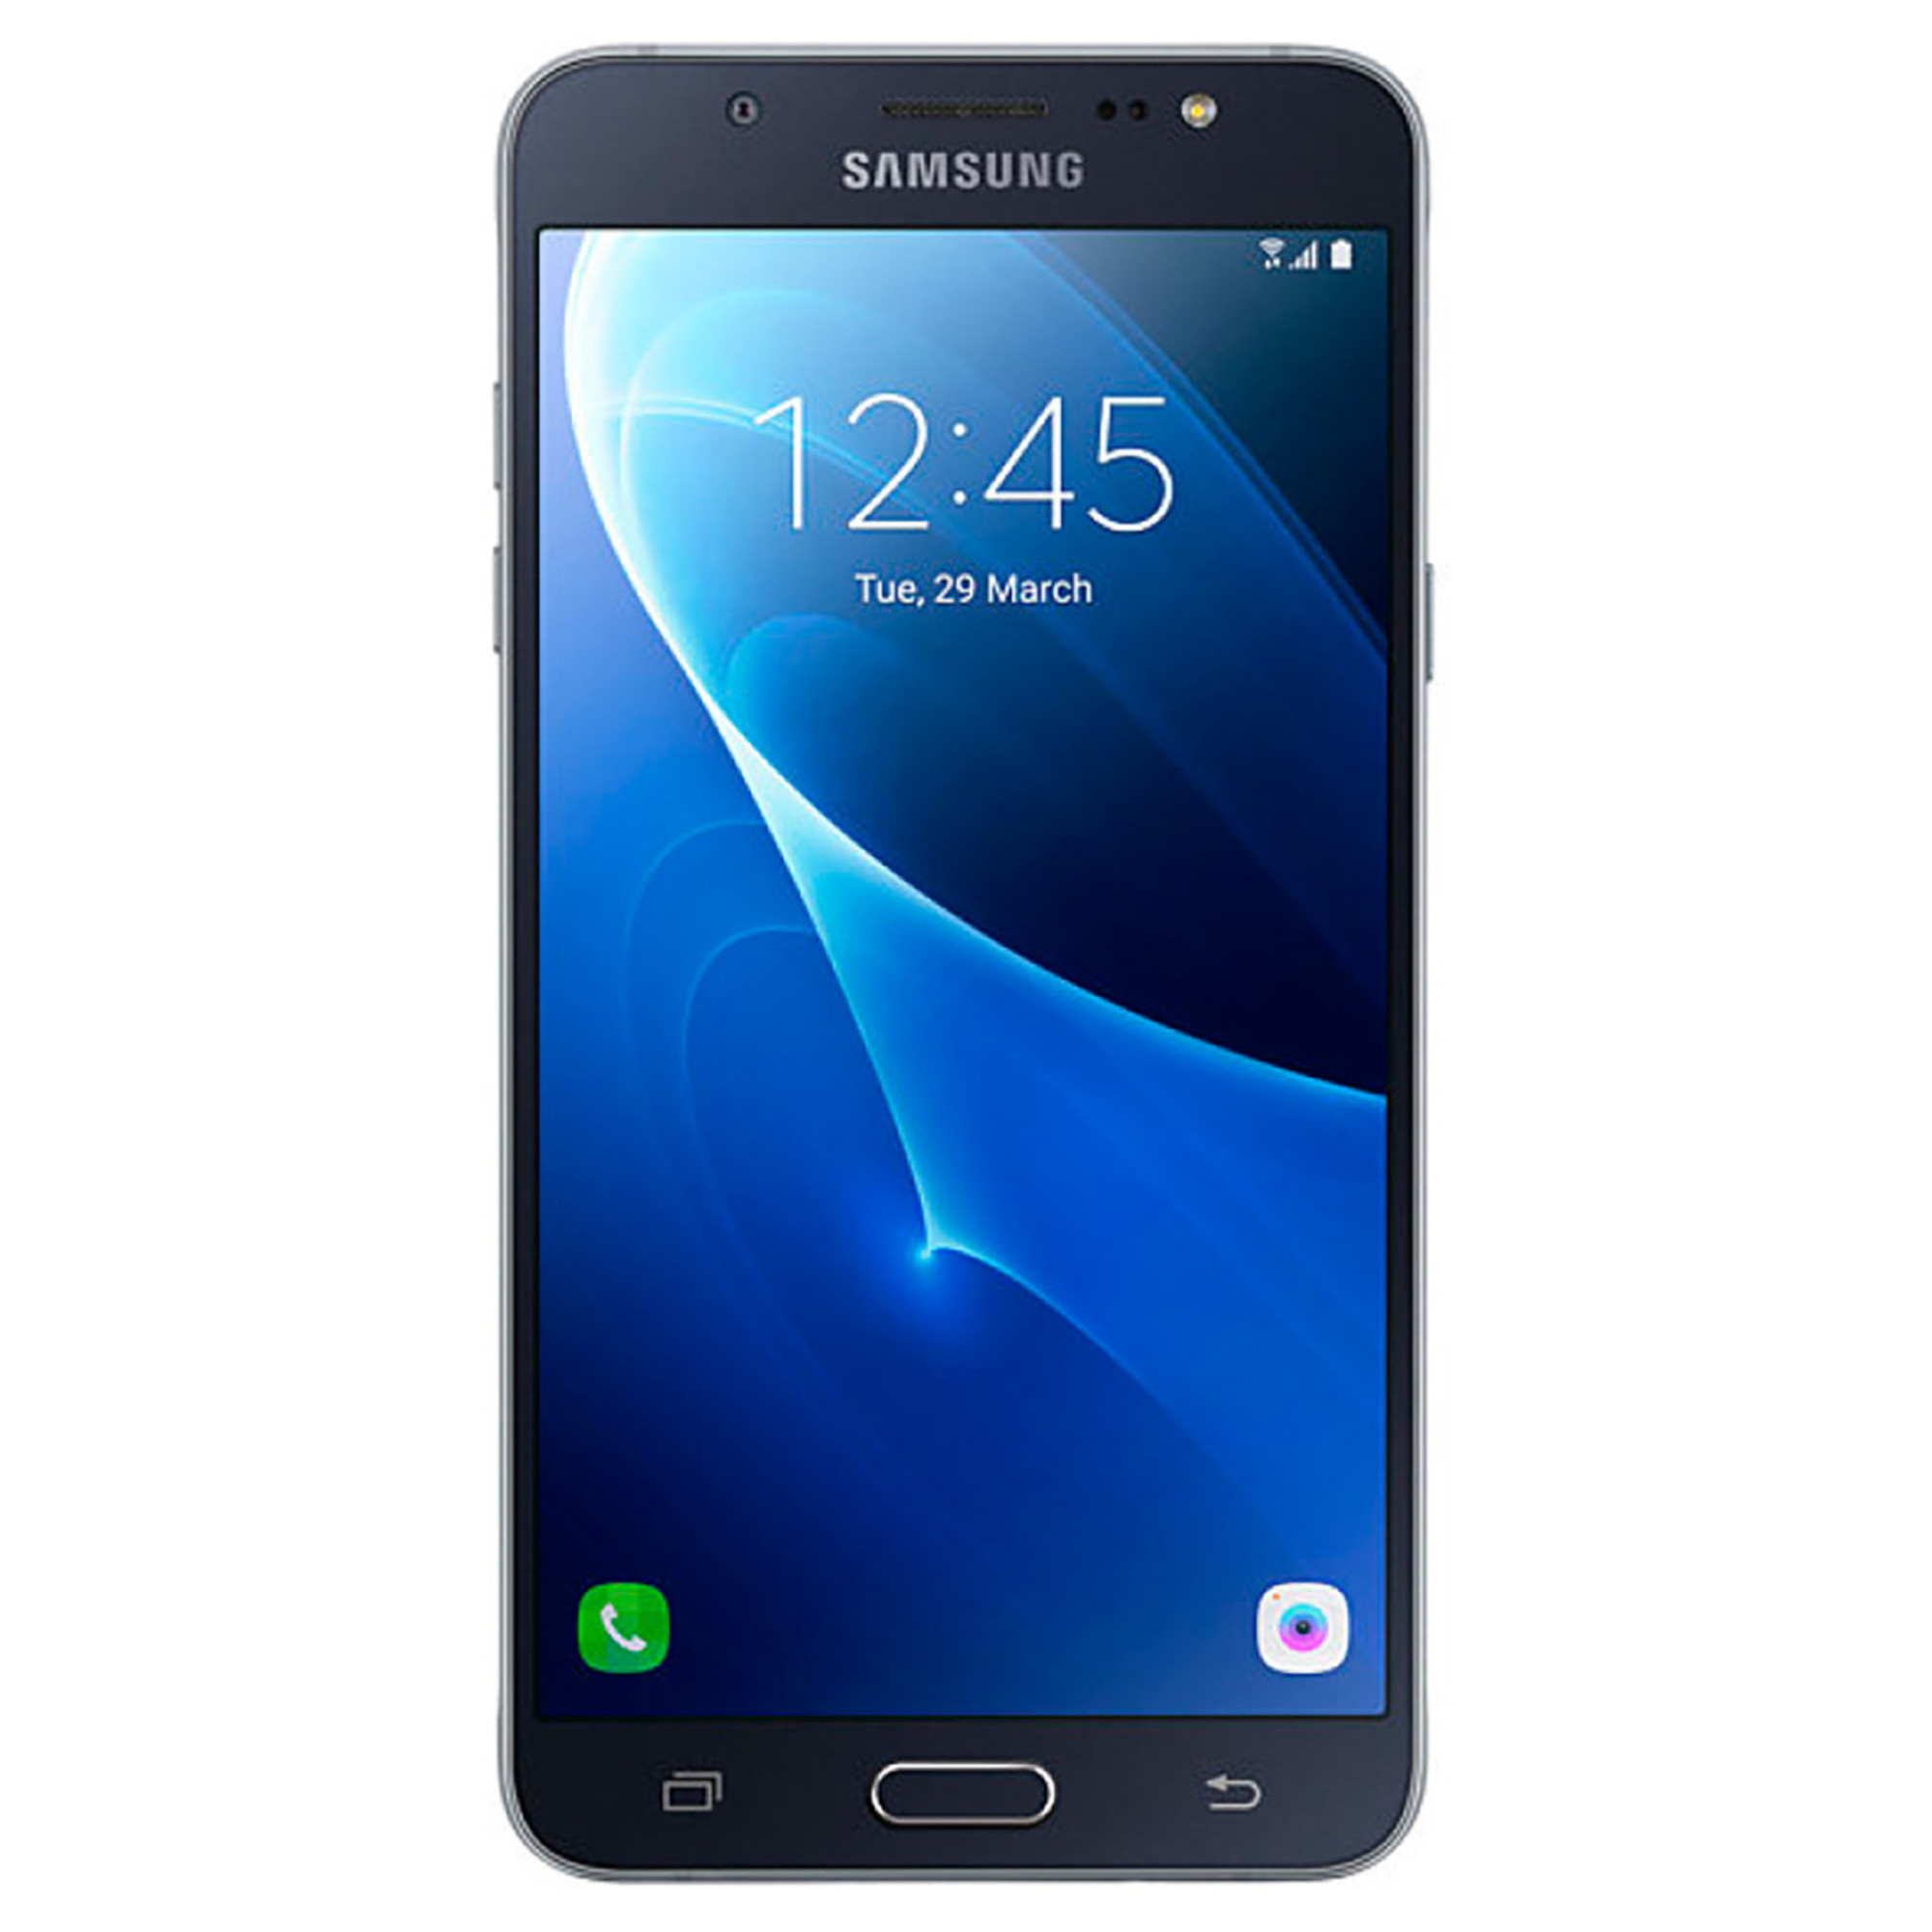 samsung galaxy j7 2016 16gb unlocked gsm 4g lte 13mp. Black Bedroom Furniture Sets. Home Design Ideas